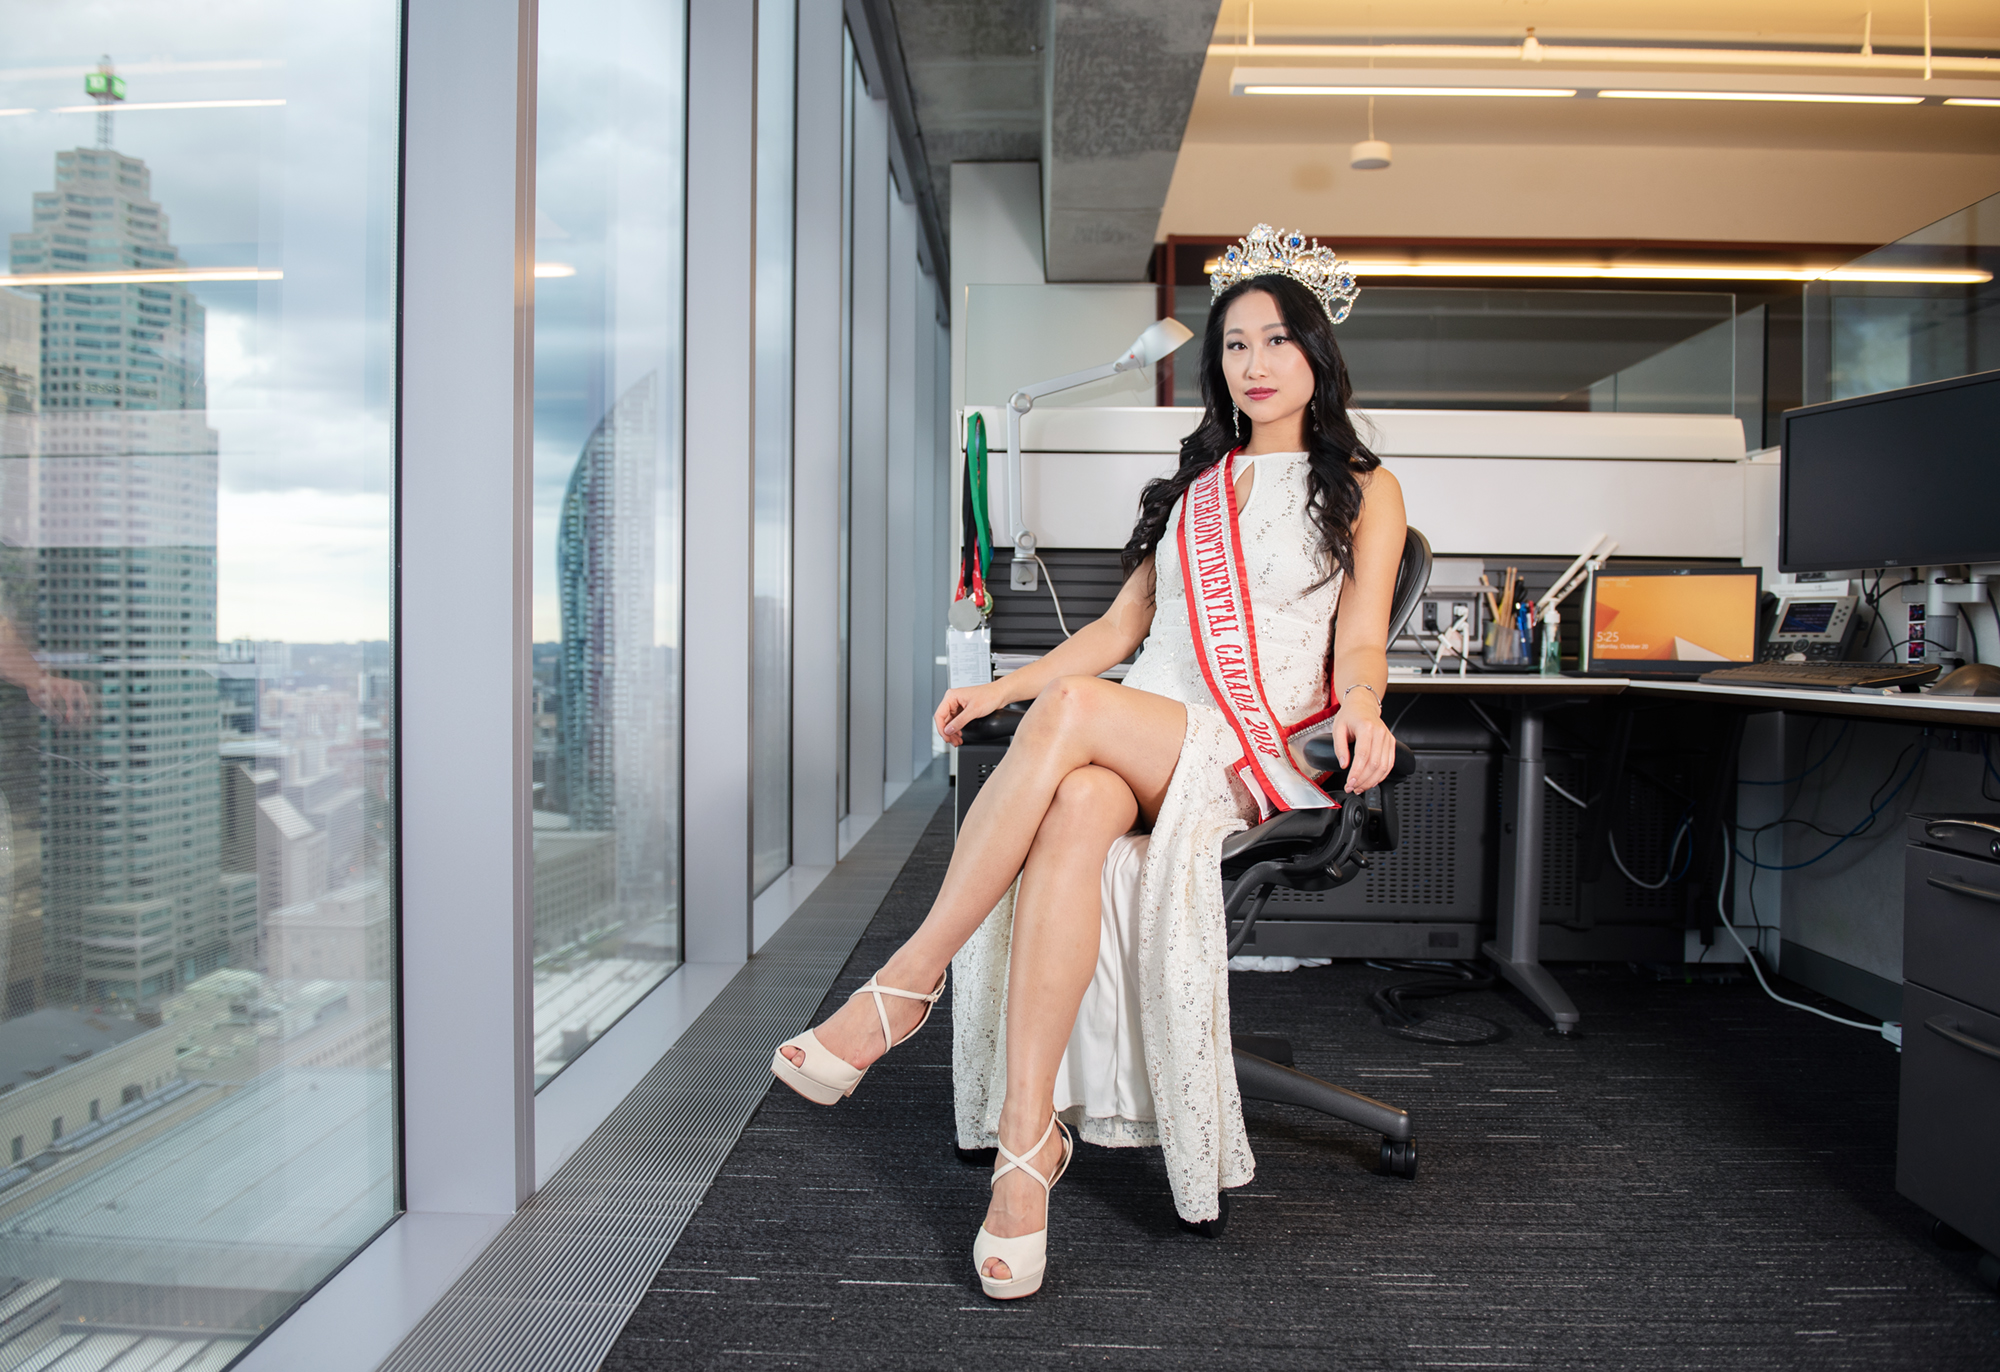 Alice Li, reigning Miss Intercontinental Canada 2018, at her office. She works full-time as an accountant while also doing pageants, and busking at TTC stations and other public spaces around Toronto for charity. Alice will be competing in the Miss Intercontinental international pageant in Manila in January 2018.